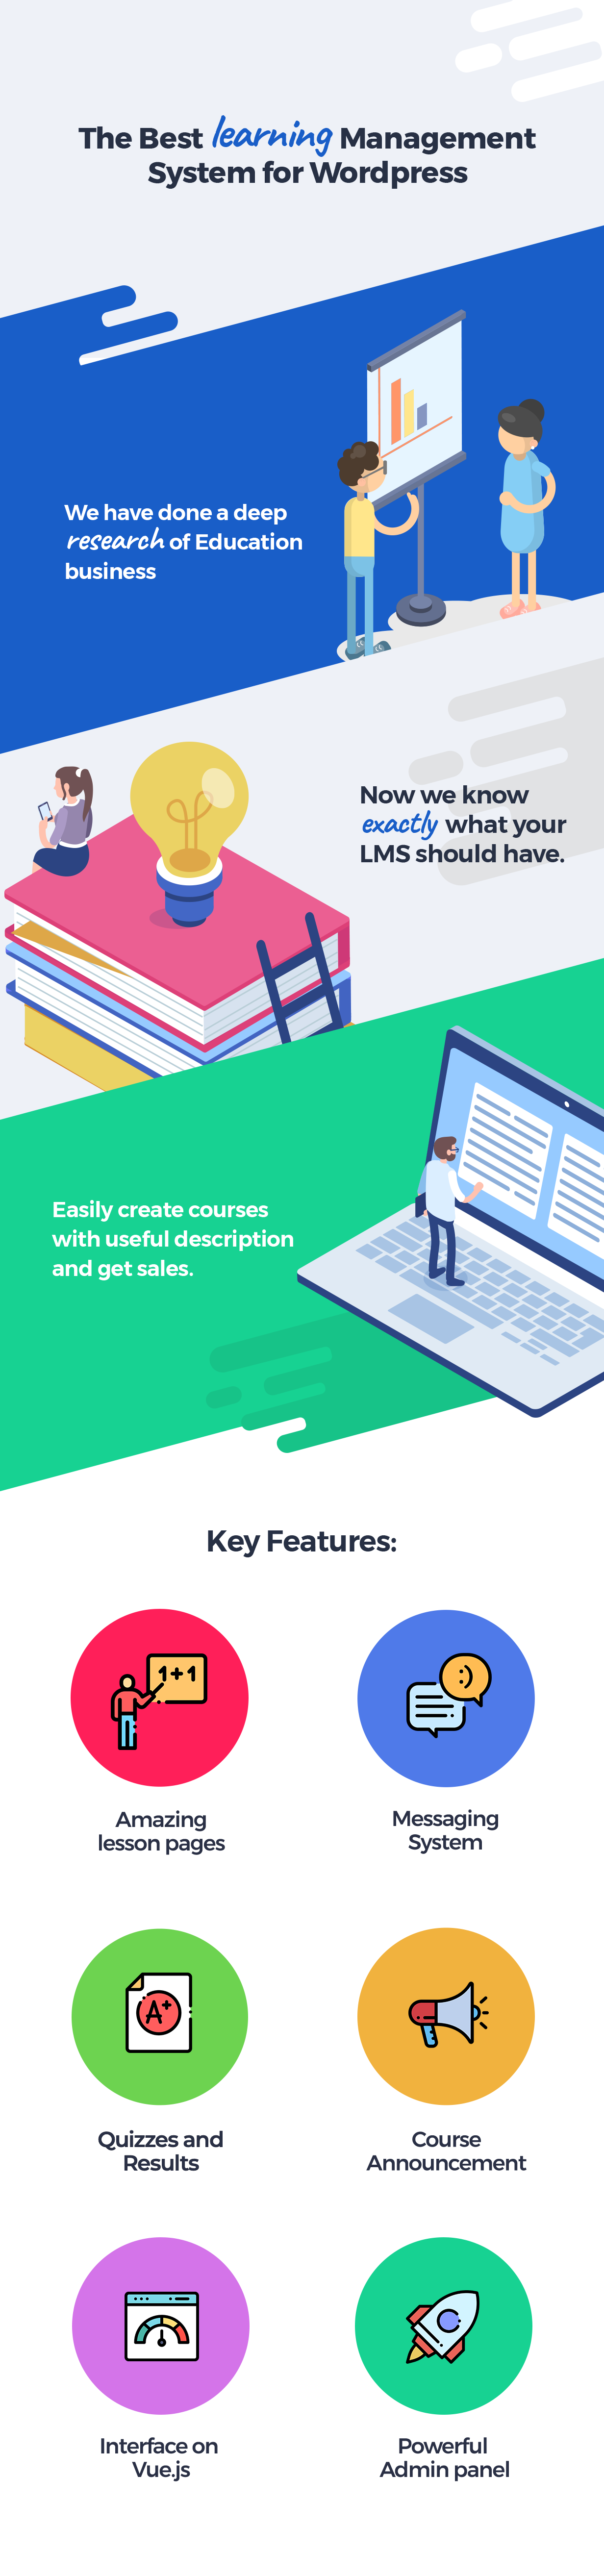 Masterstudy - Education WordPress Theme for Learning, Training and Education Center